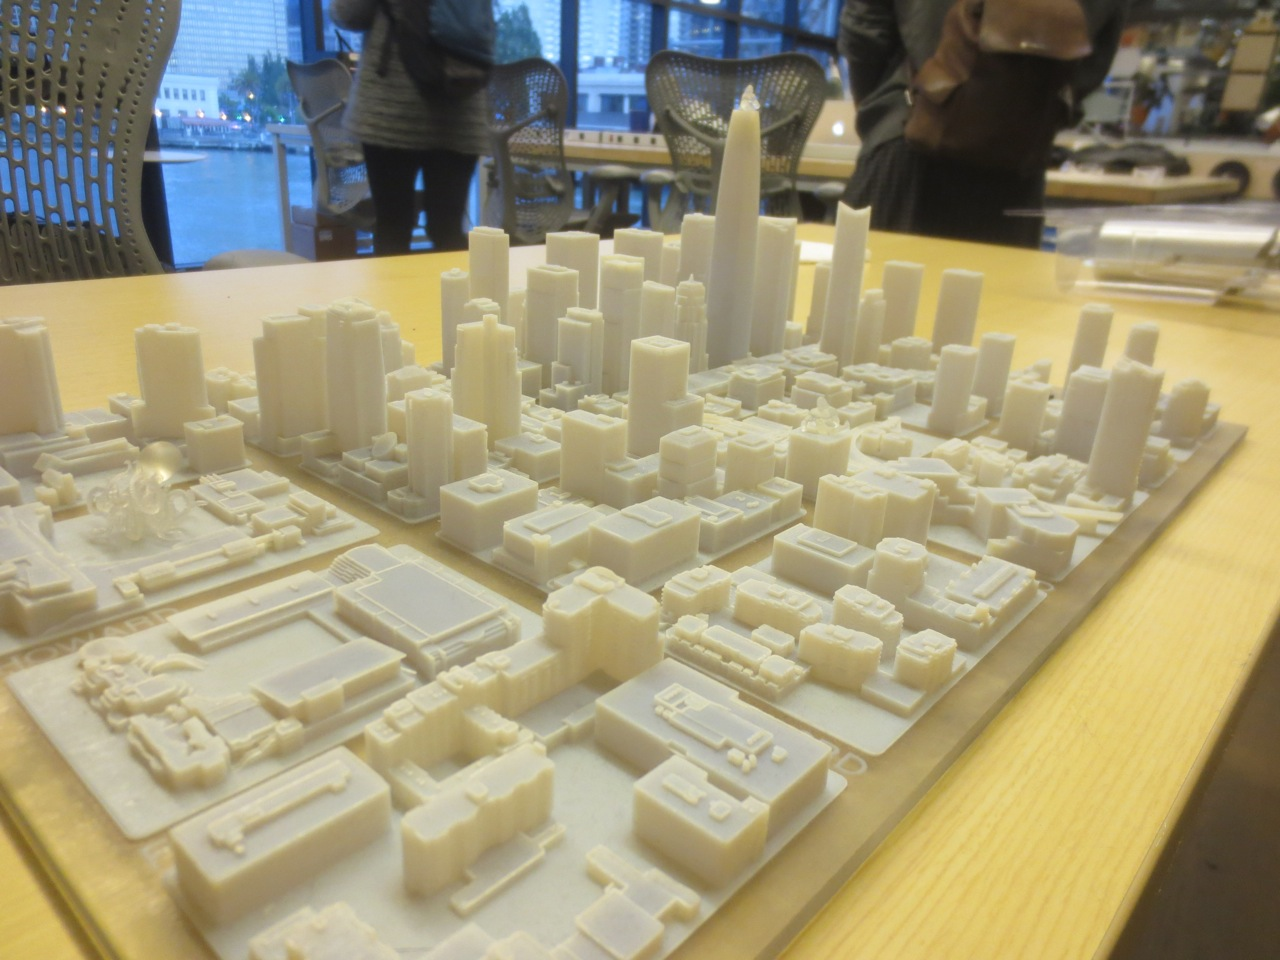 3d model of downtown sf